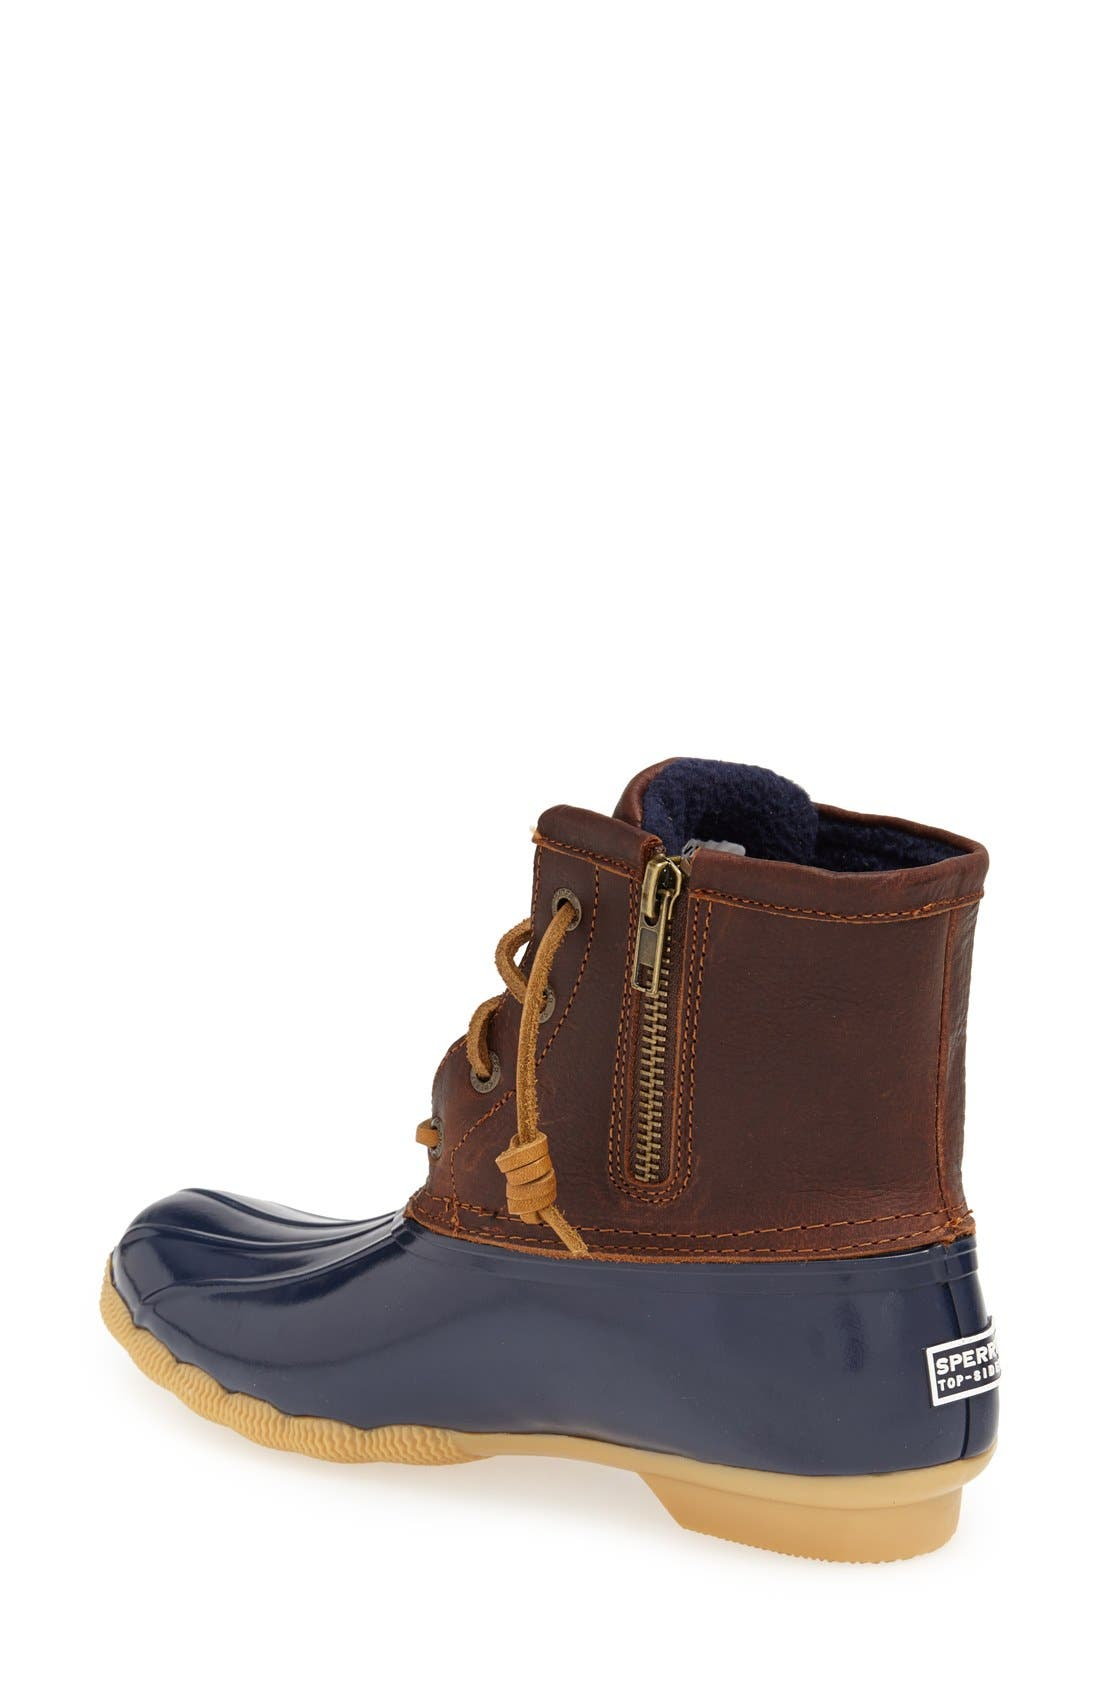 Saltwater Duck Boot,                             Alternate thumbnail 2, color,                             Tan/ Navy